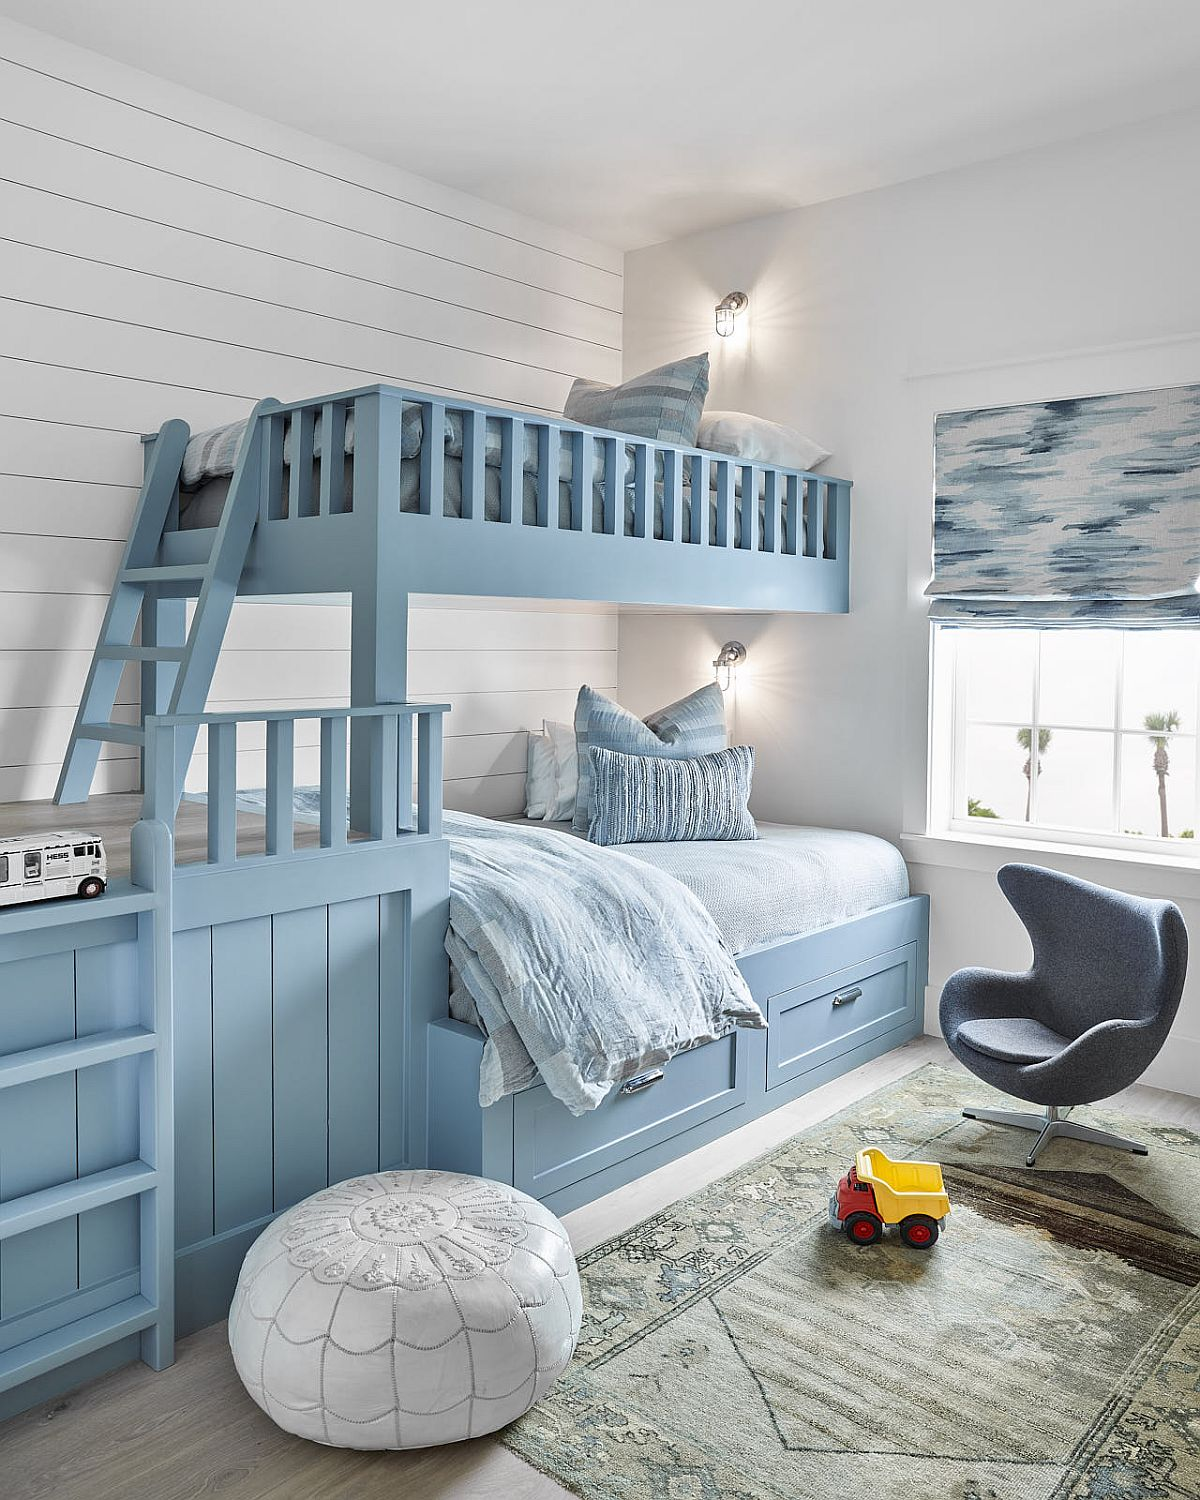 Bunk-beds-in-blue-for-the-beach-style-kids-bedroom-50352